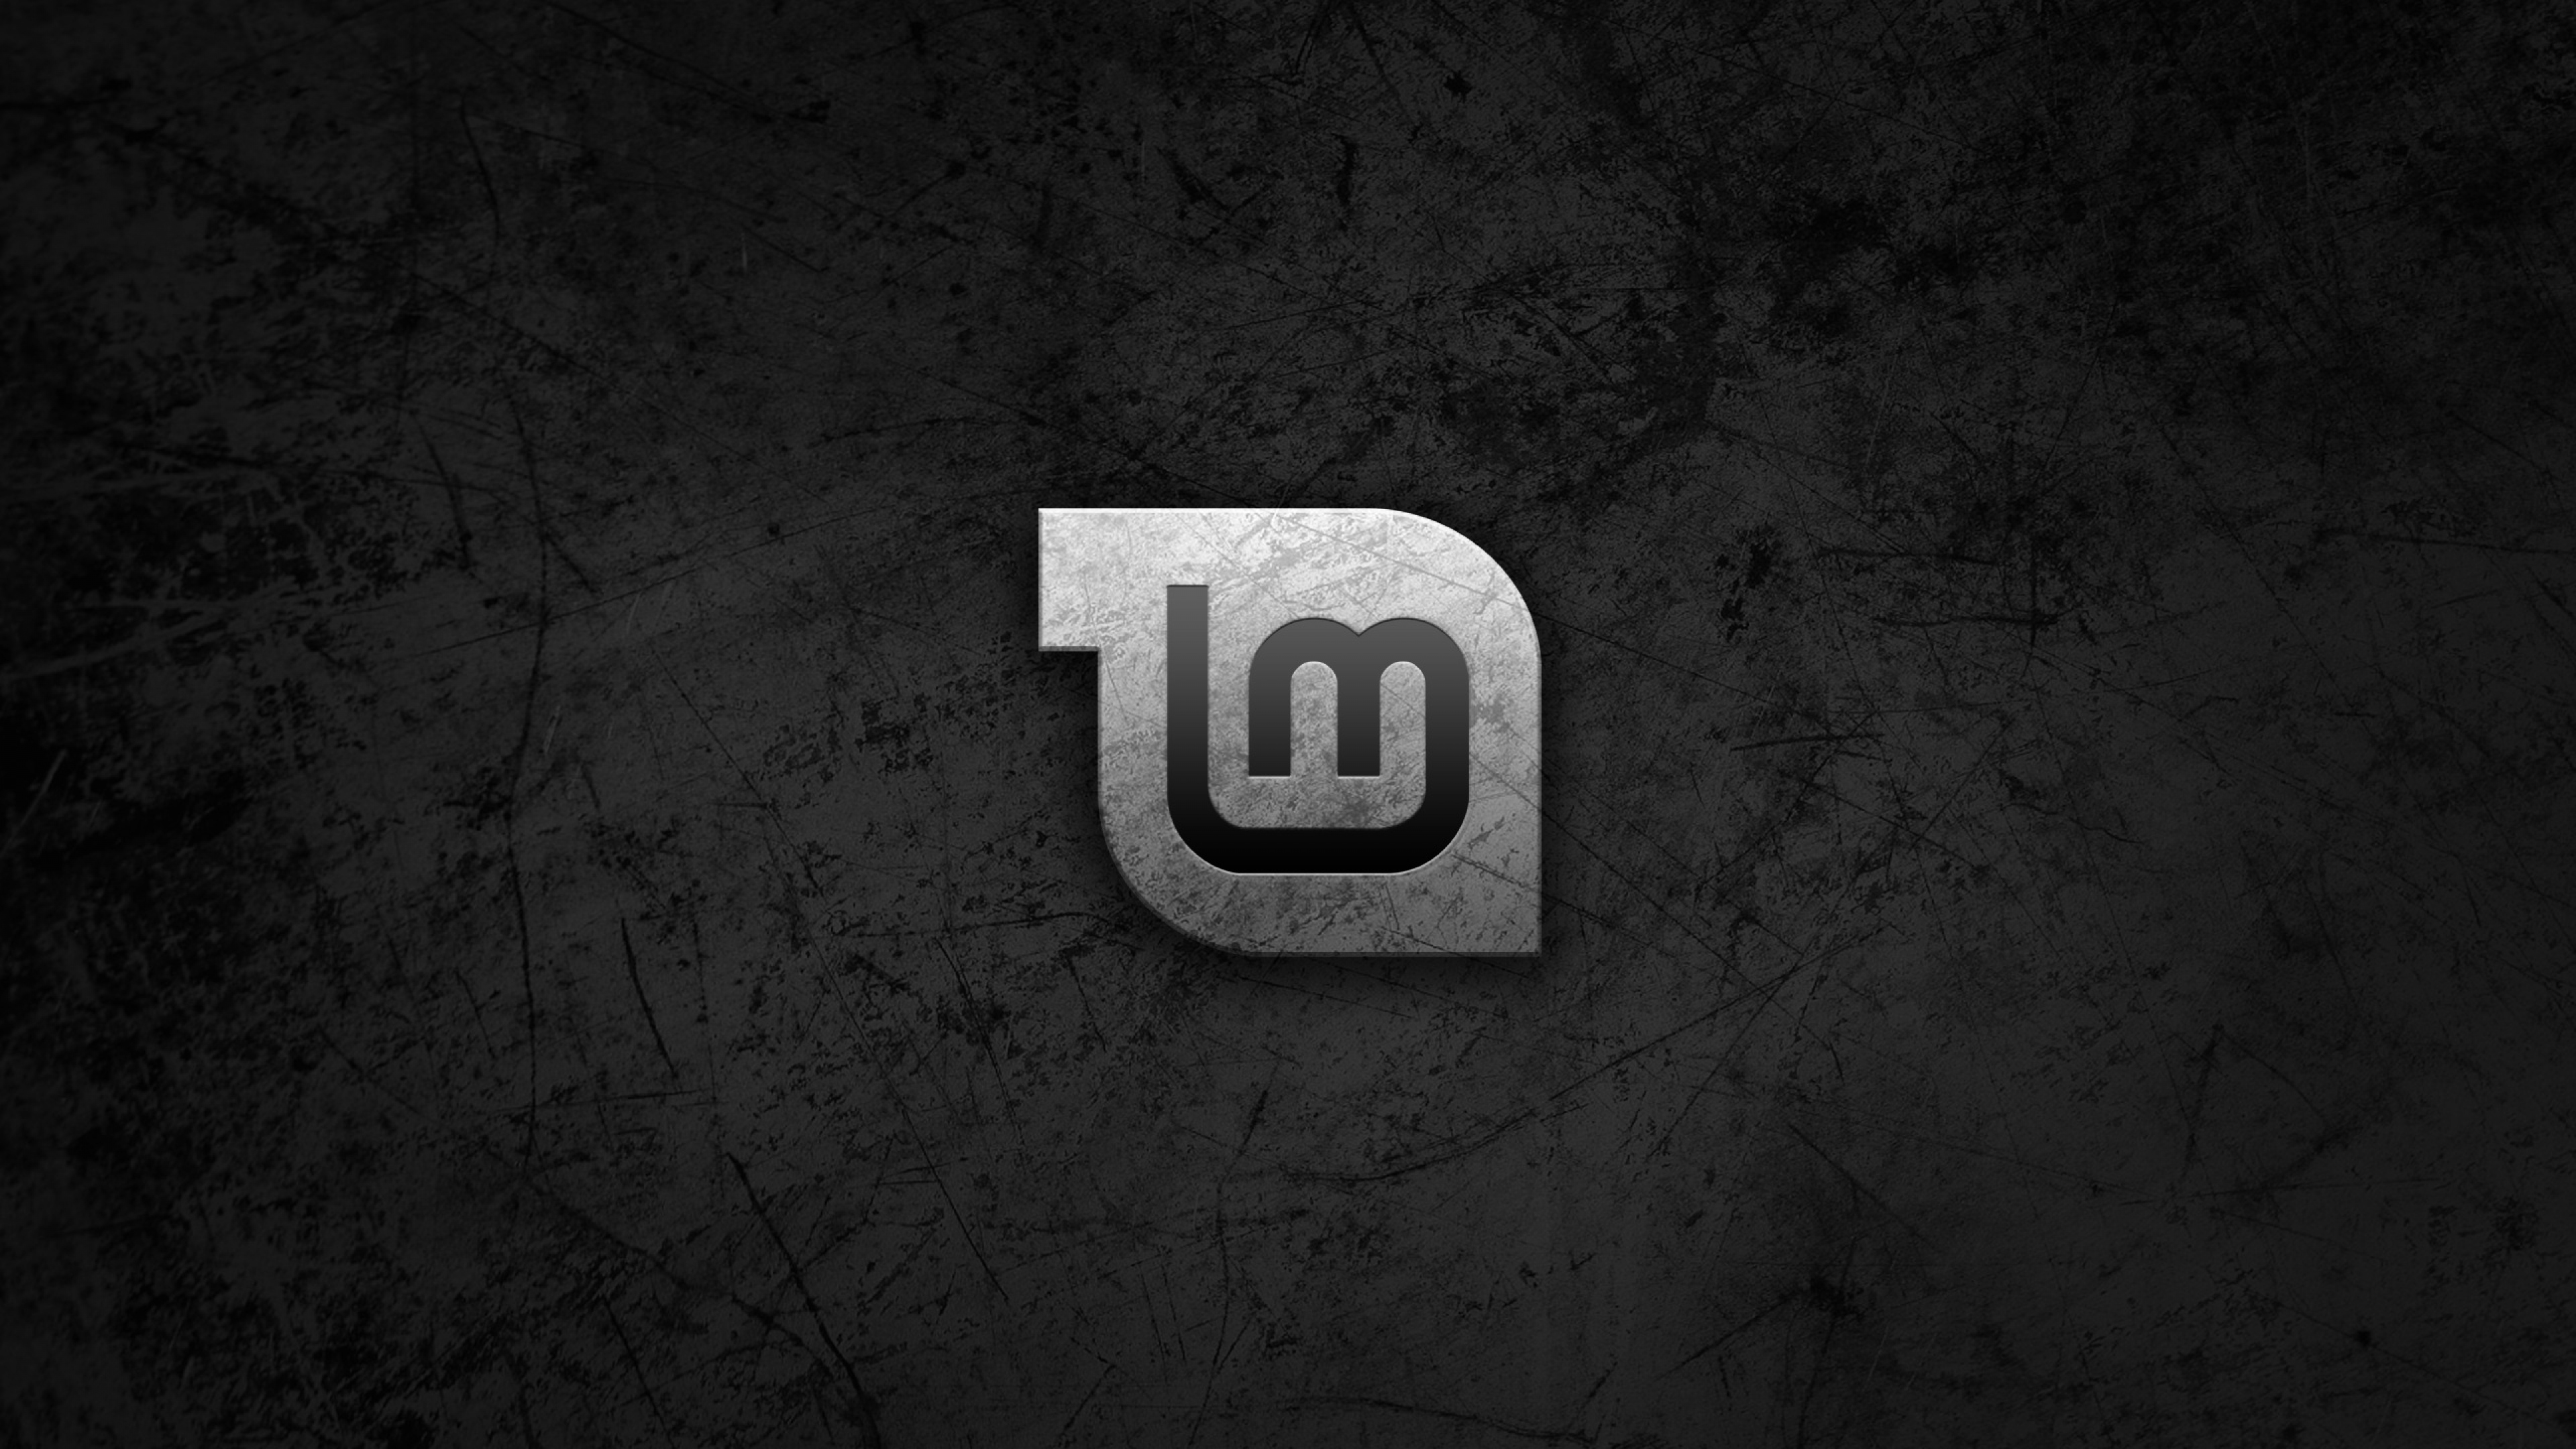 Linux Mint Black Hd Computer 4k Wallpapers Images